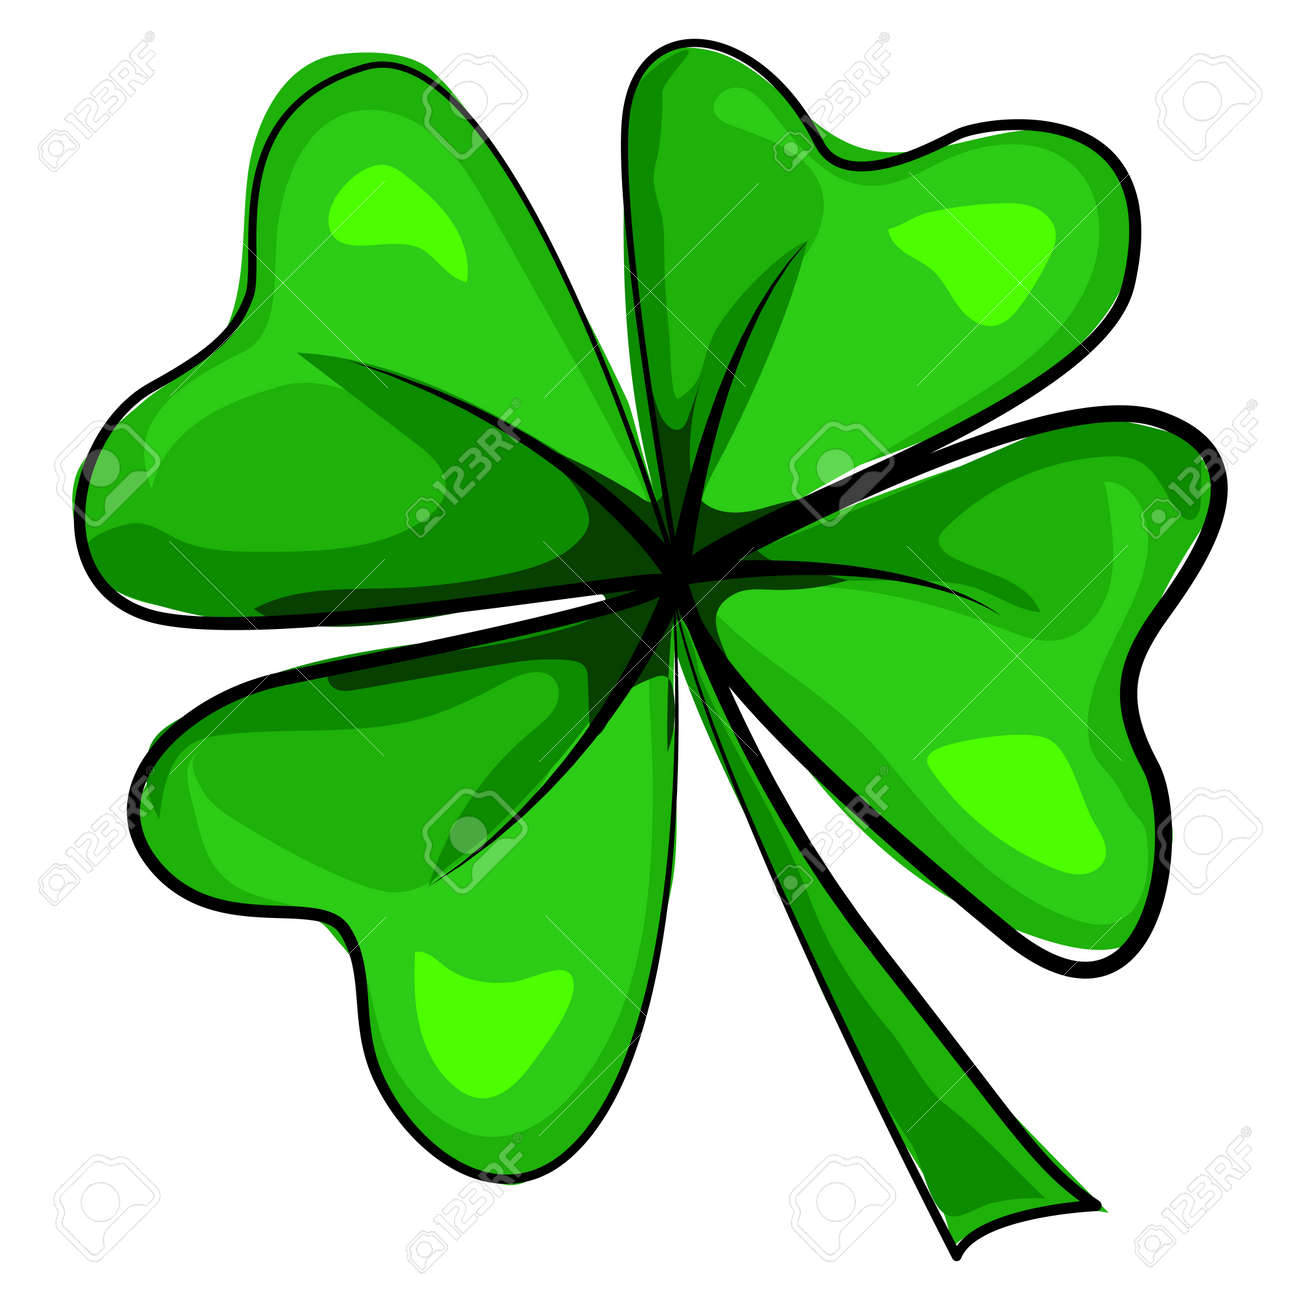 Four leaf clover icon. Vector cartoon illustration isolated on white background. Design elements for St. Patrick's Day. - 94395105